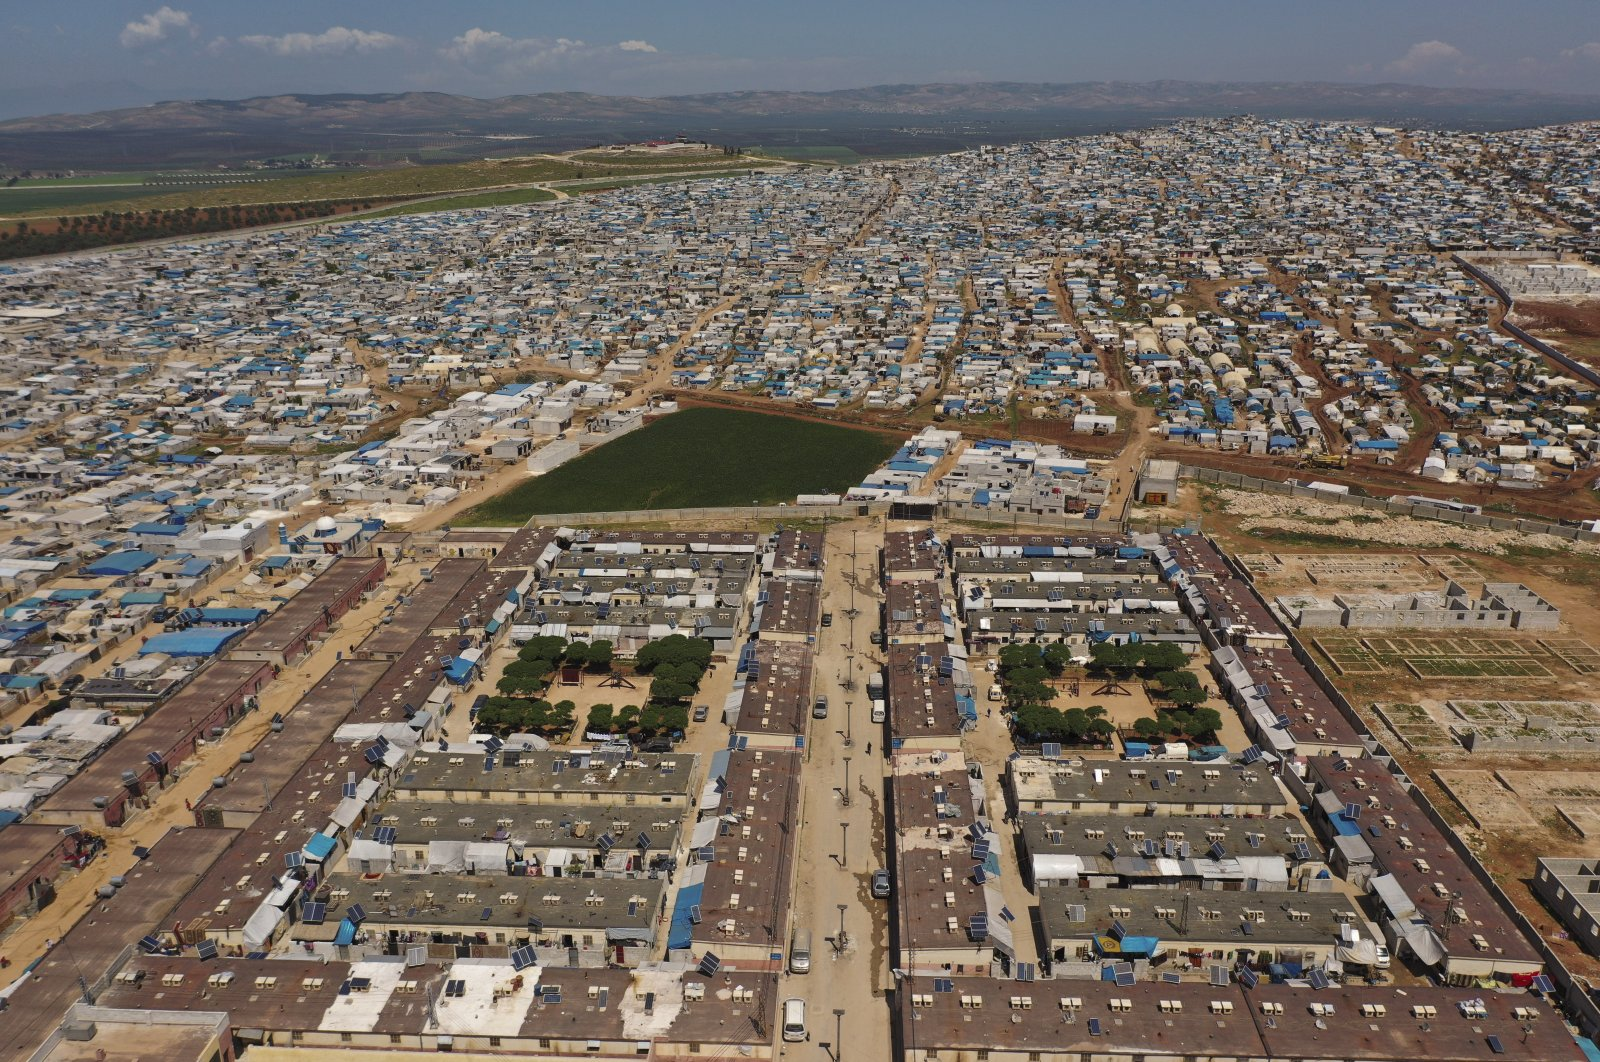 A large refugee camp pictured on the Syrian side of the border with Turkey, near the town of Atma, in Idlib province, Syria on April 19, 2020. (AP File Photo)